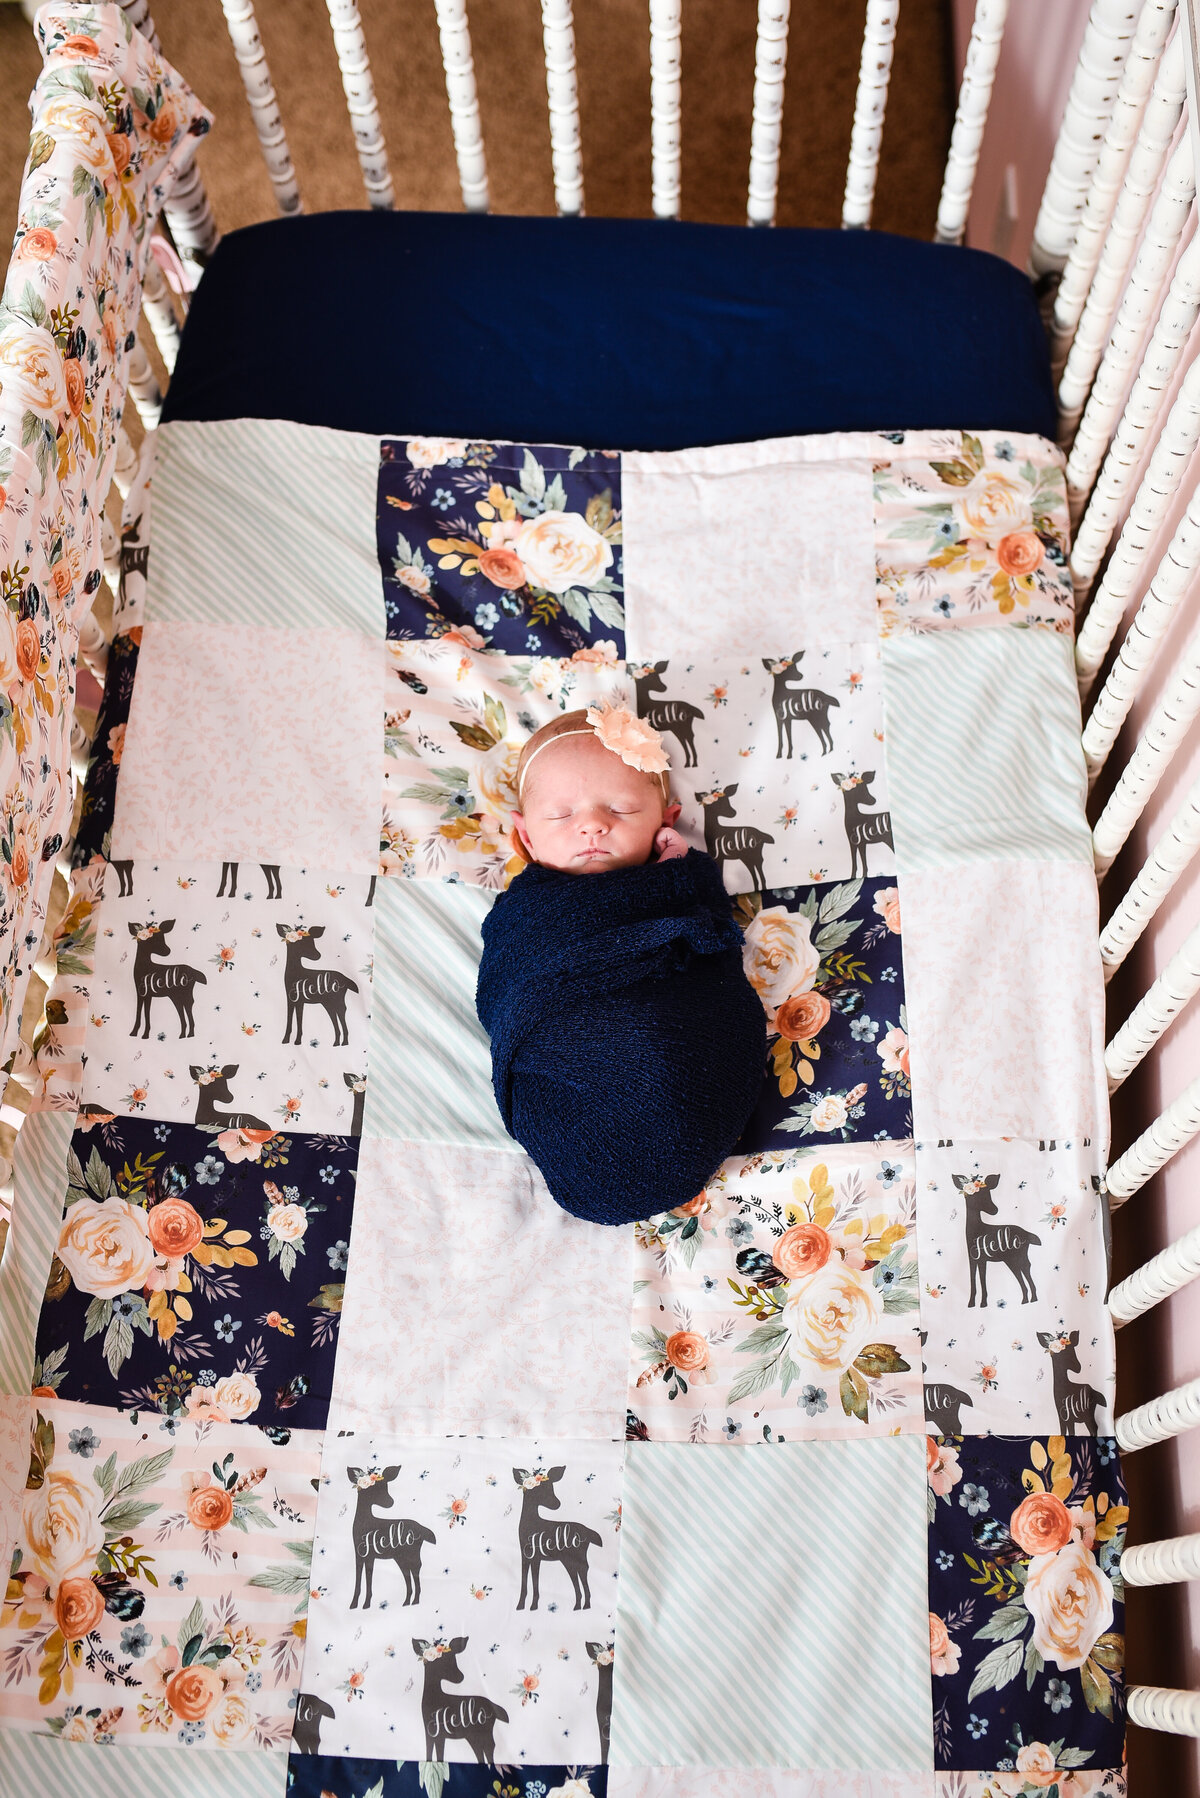 Beautiful  lifestyle newborn photography: Newborn girl wrapped in navy in her crib with cnavy and peach floral bedding